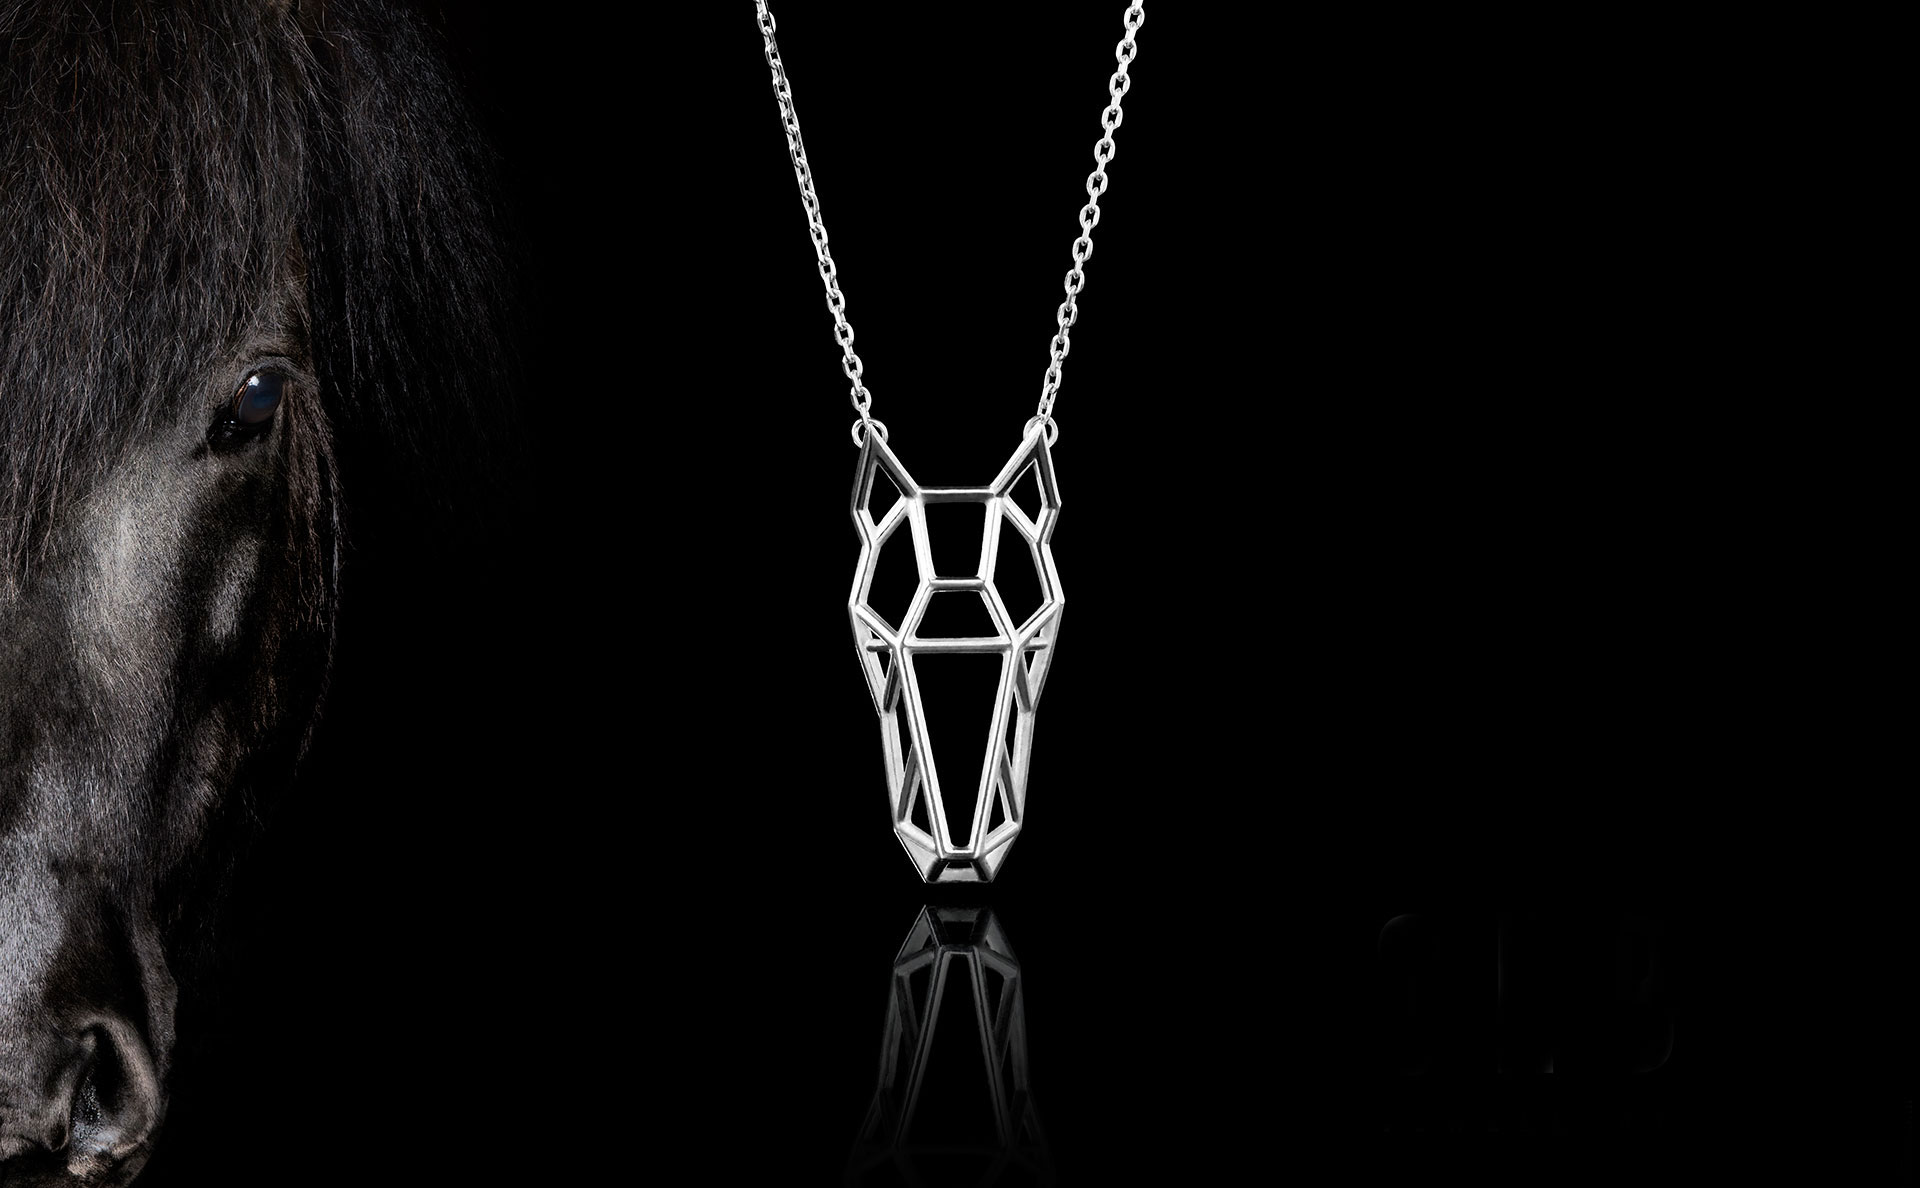 SEB Horse Face Head Black Silver Animal Necklace Icelandic Fashion Jewellery Design Geometric Scandinavian Style Jewelry